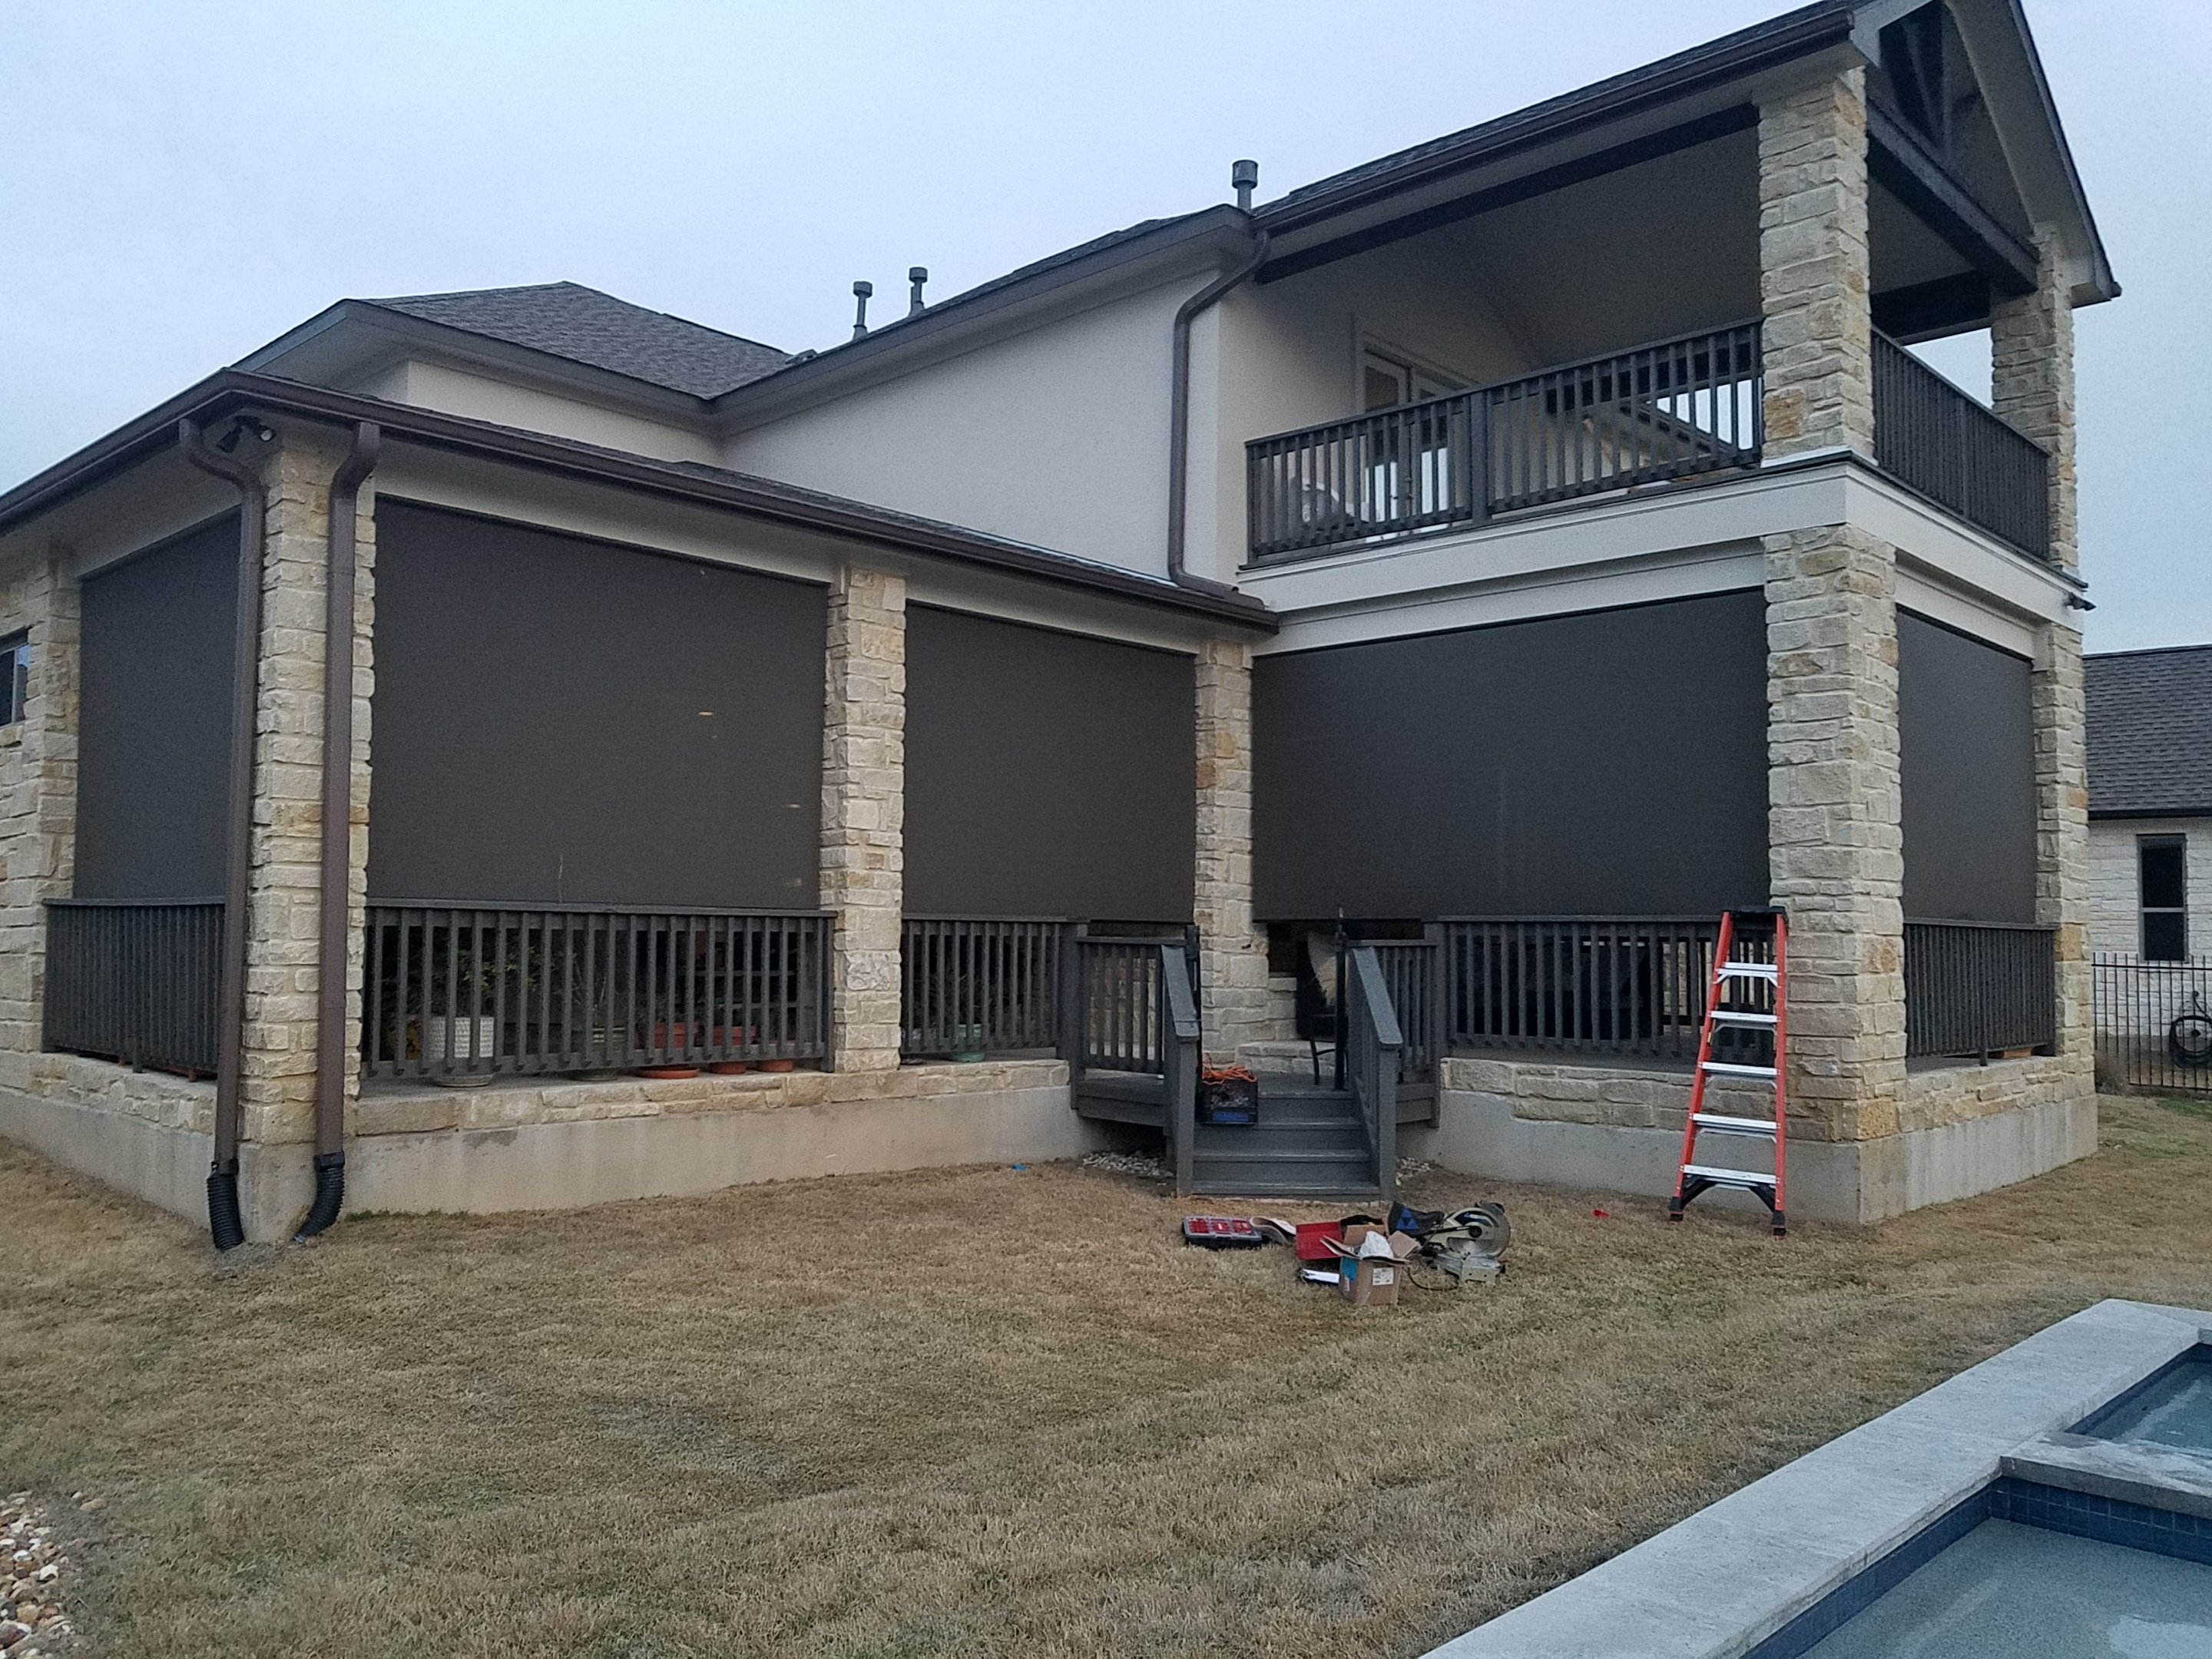 Shade all patio openings roller shades.